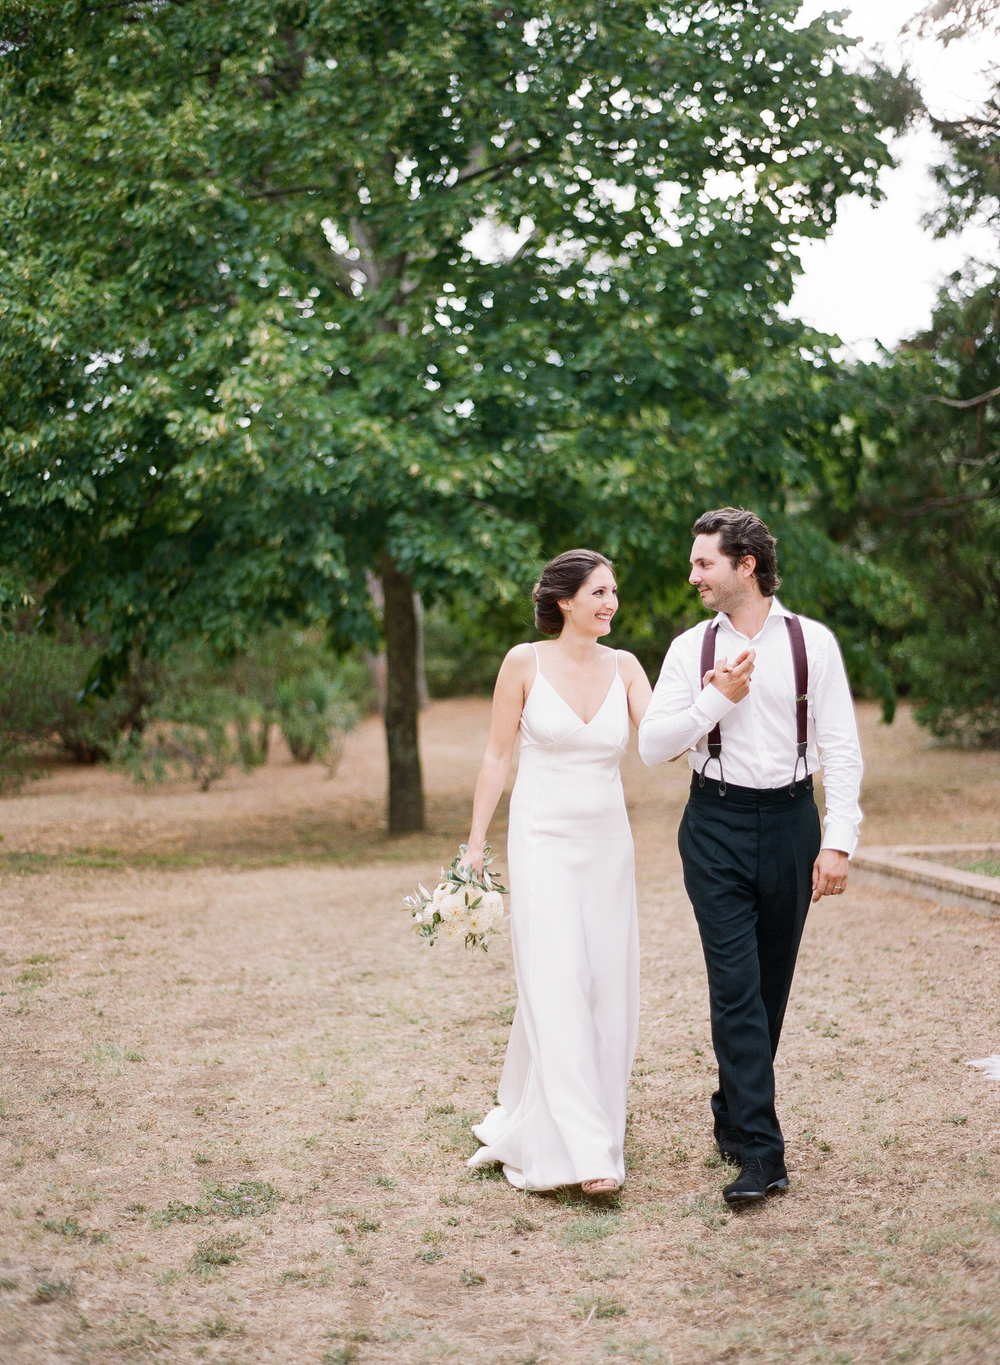 Bride and groom walk together holding hands through the orchard of the Provençal estate; Sylvie Gil Photography